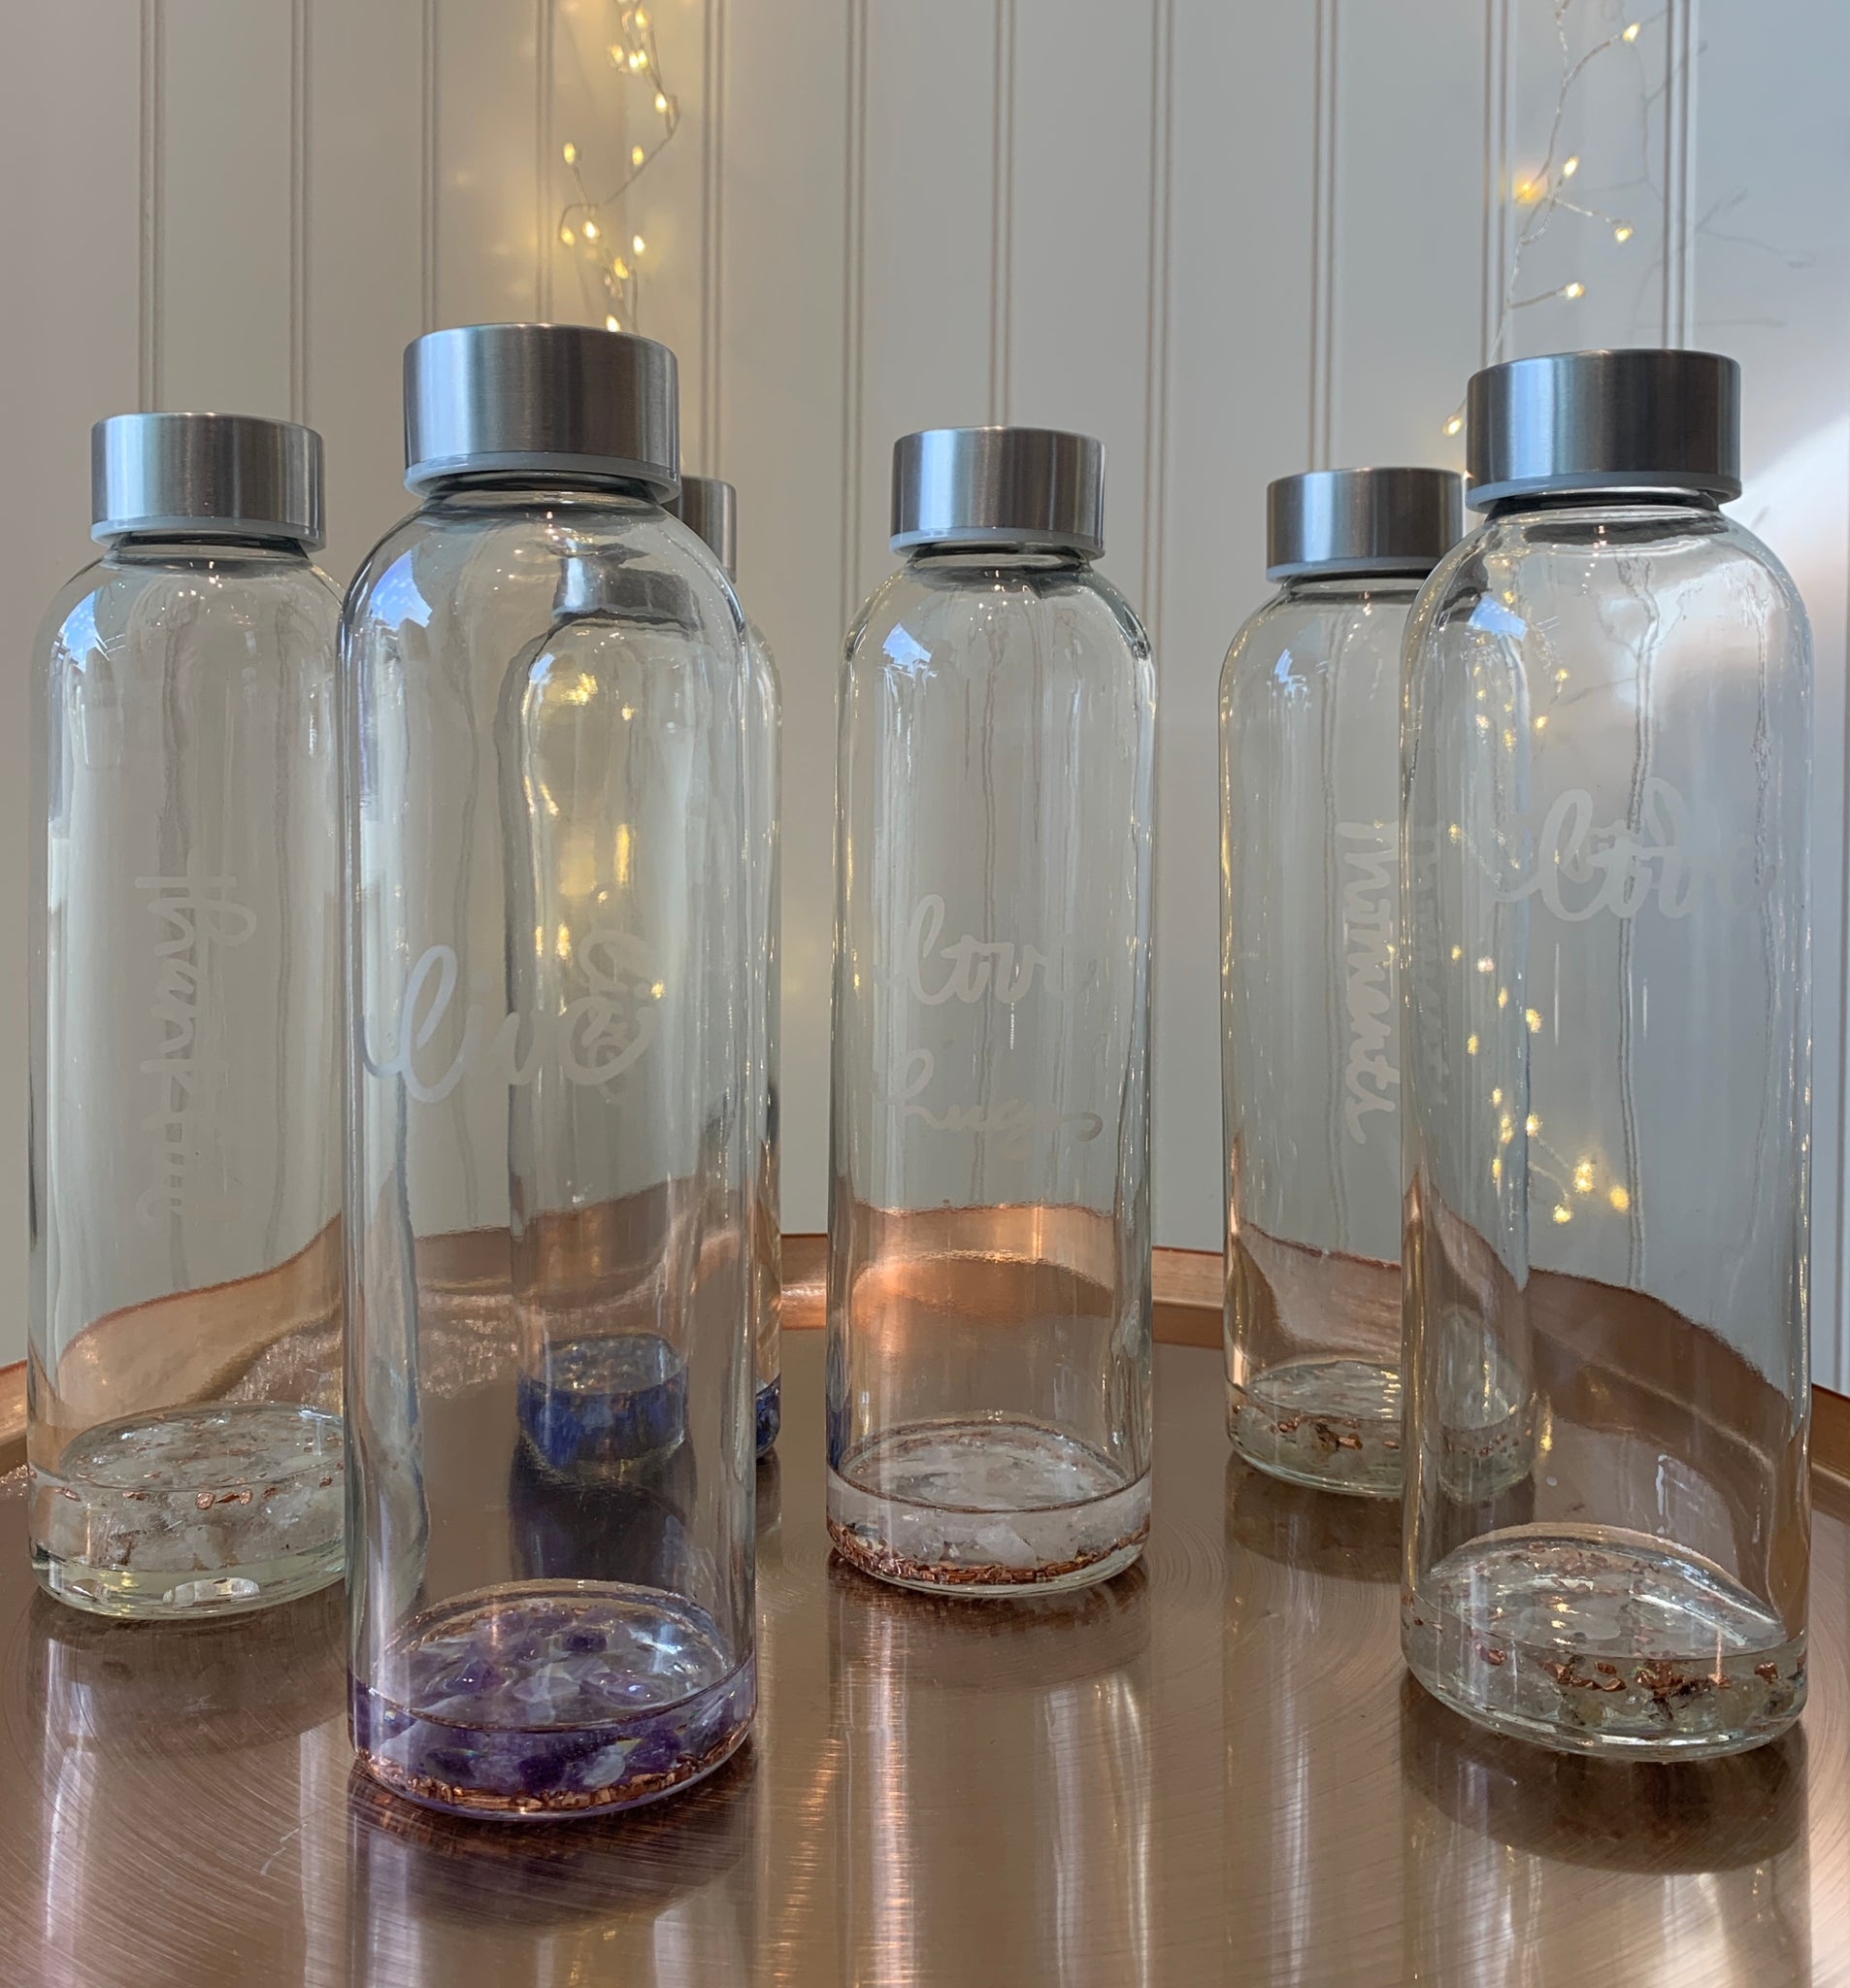 Orgonite Water Bottles